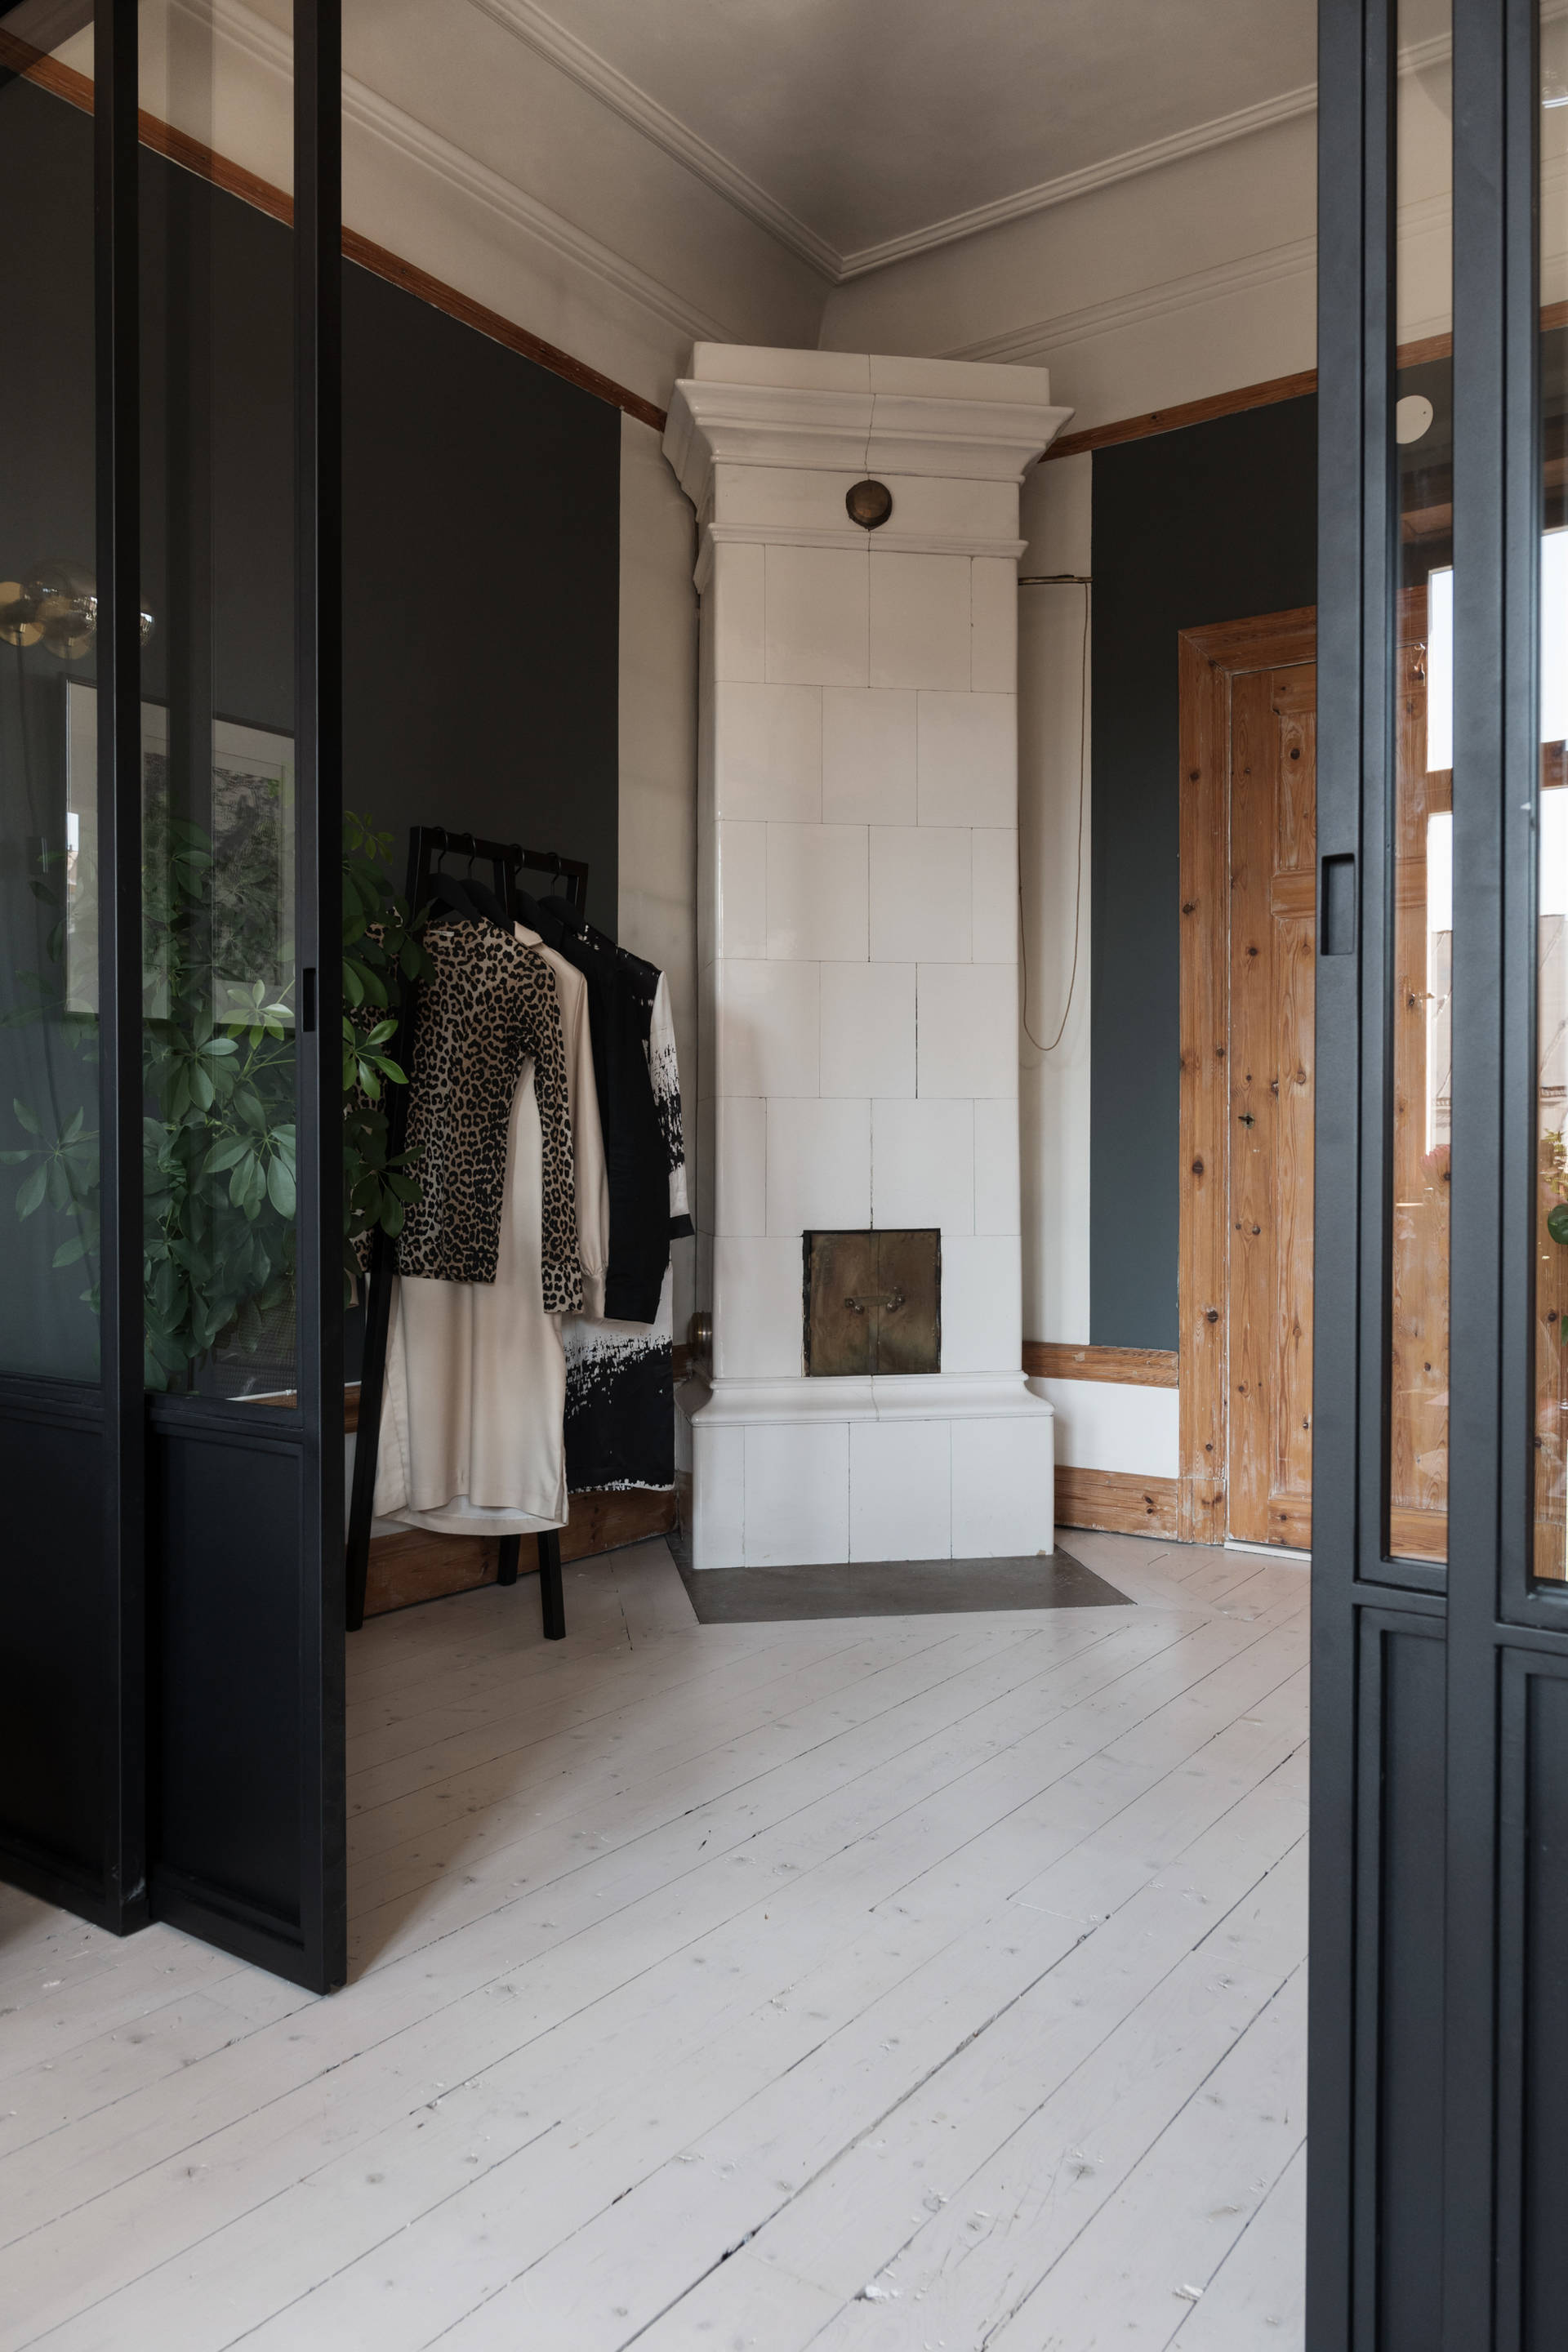 The Nordroom - A Cozy and Stylish Small Apartment